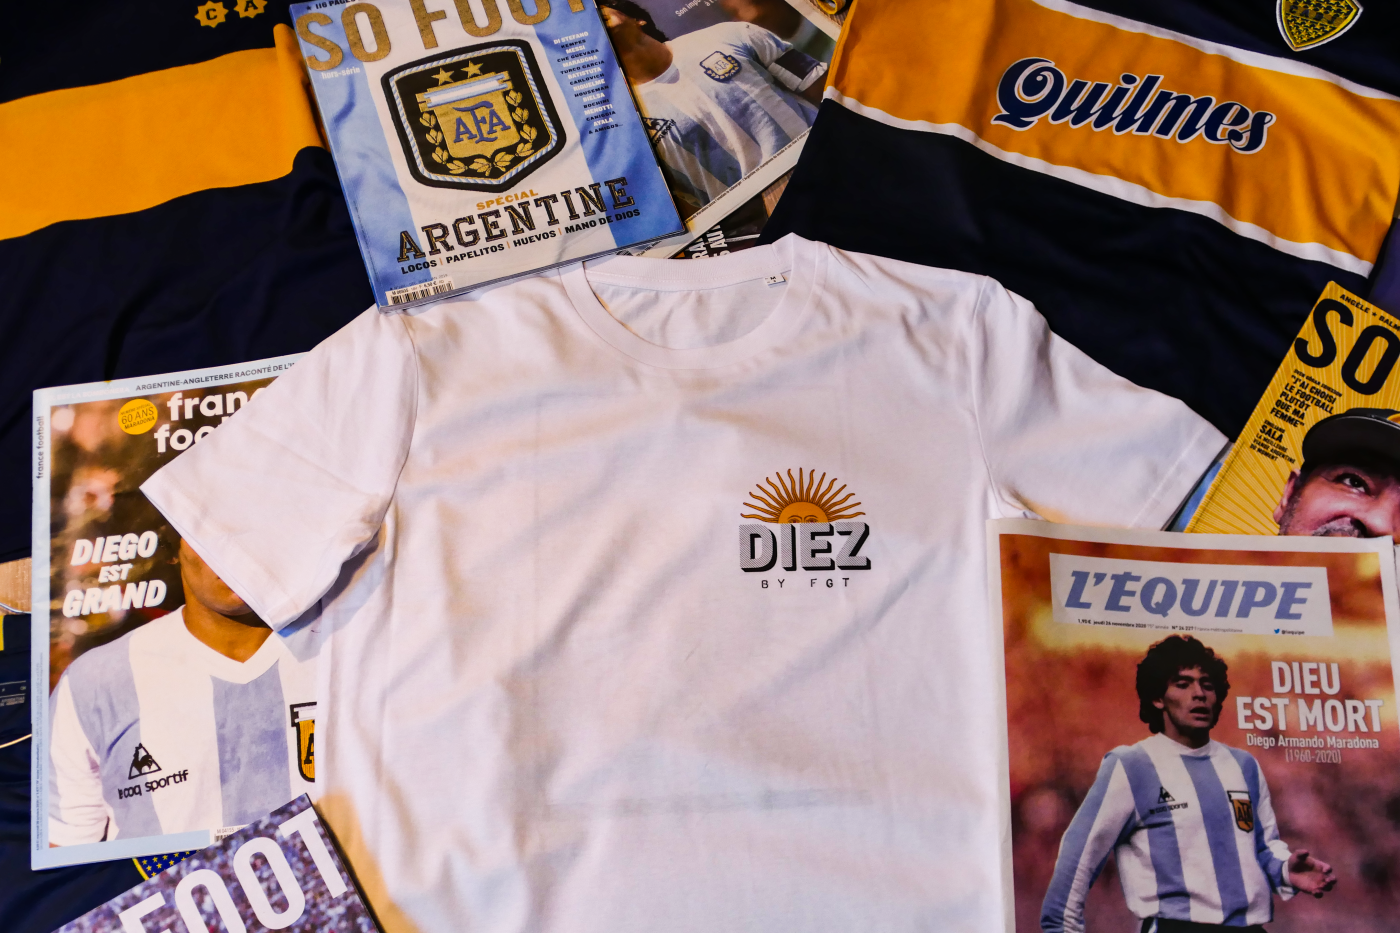 football-globe-trotters-collection-diez-by-fgt-3